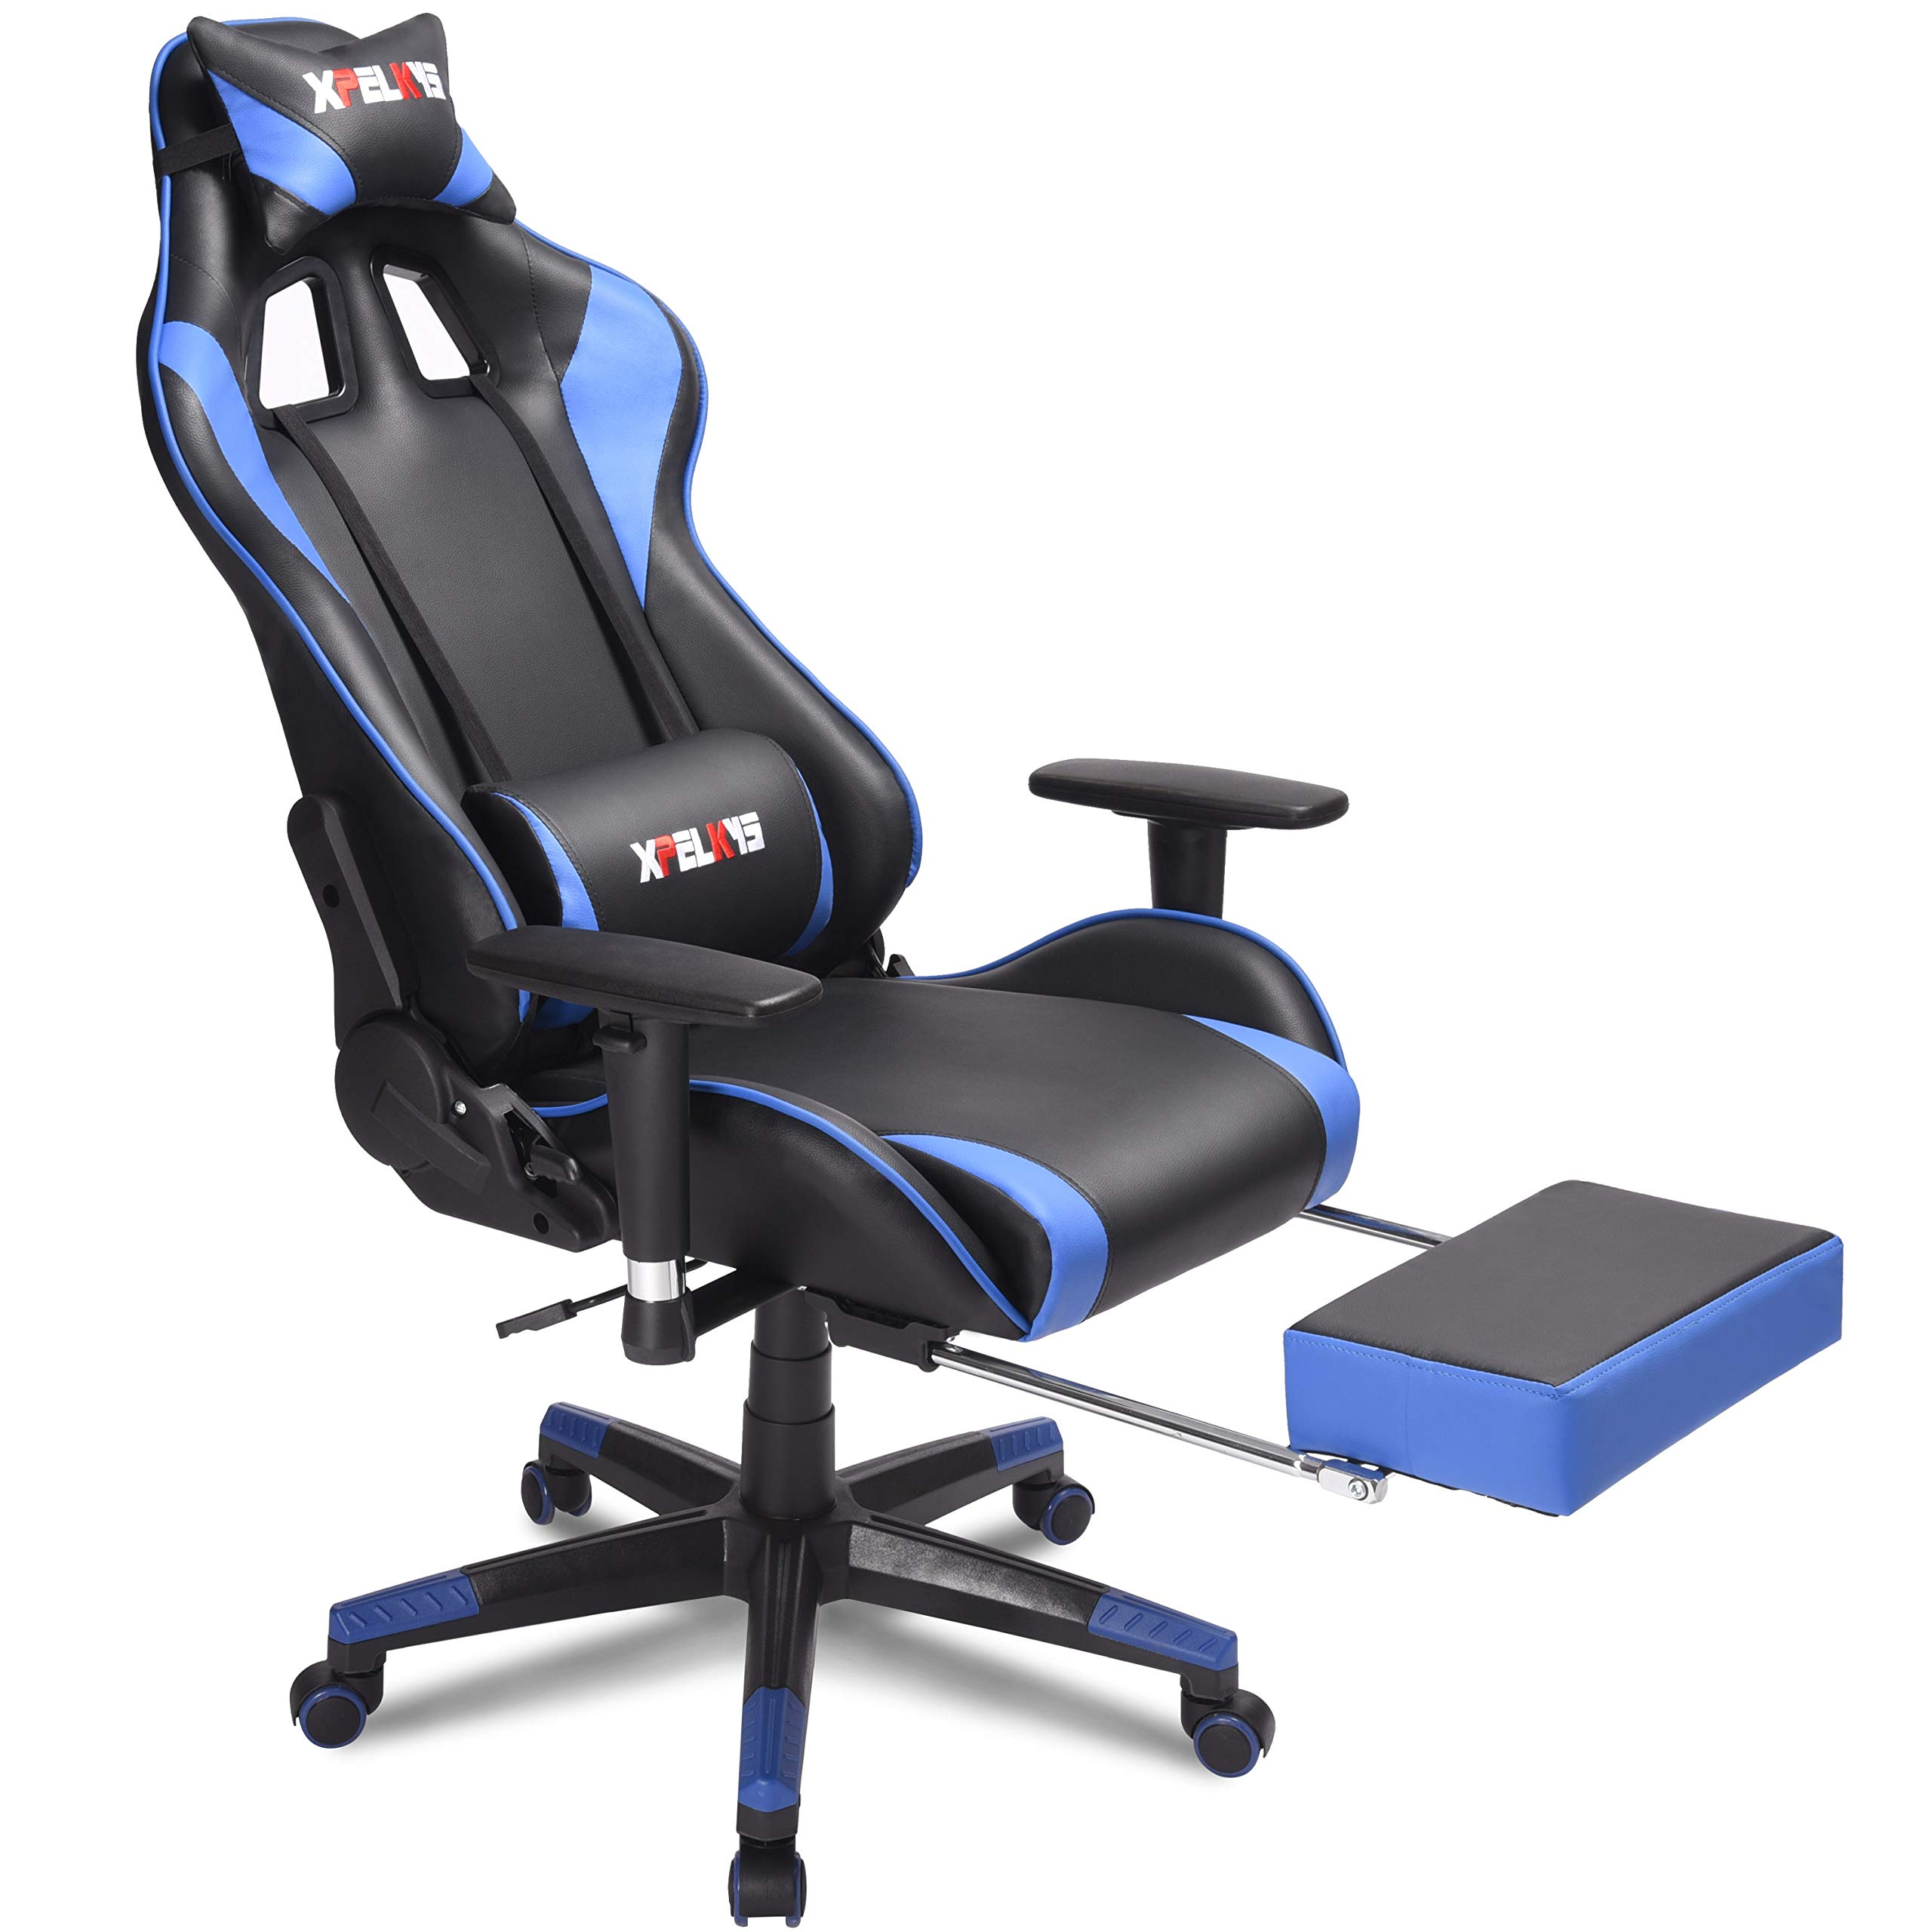 Xpelkys Home Office Desk Chair Computer Gaming Chair Video Gaming Chair Swivel Leather Ergonomic Chair With Padded Footrest And Cushion Height Adjustable Adjustable Armrests Blue